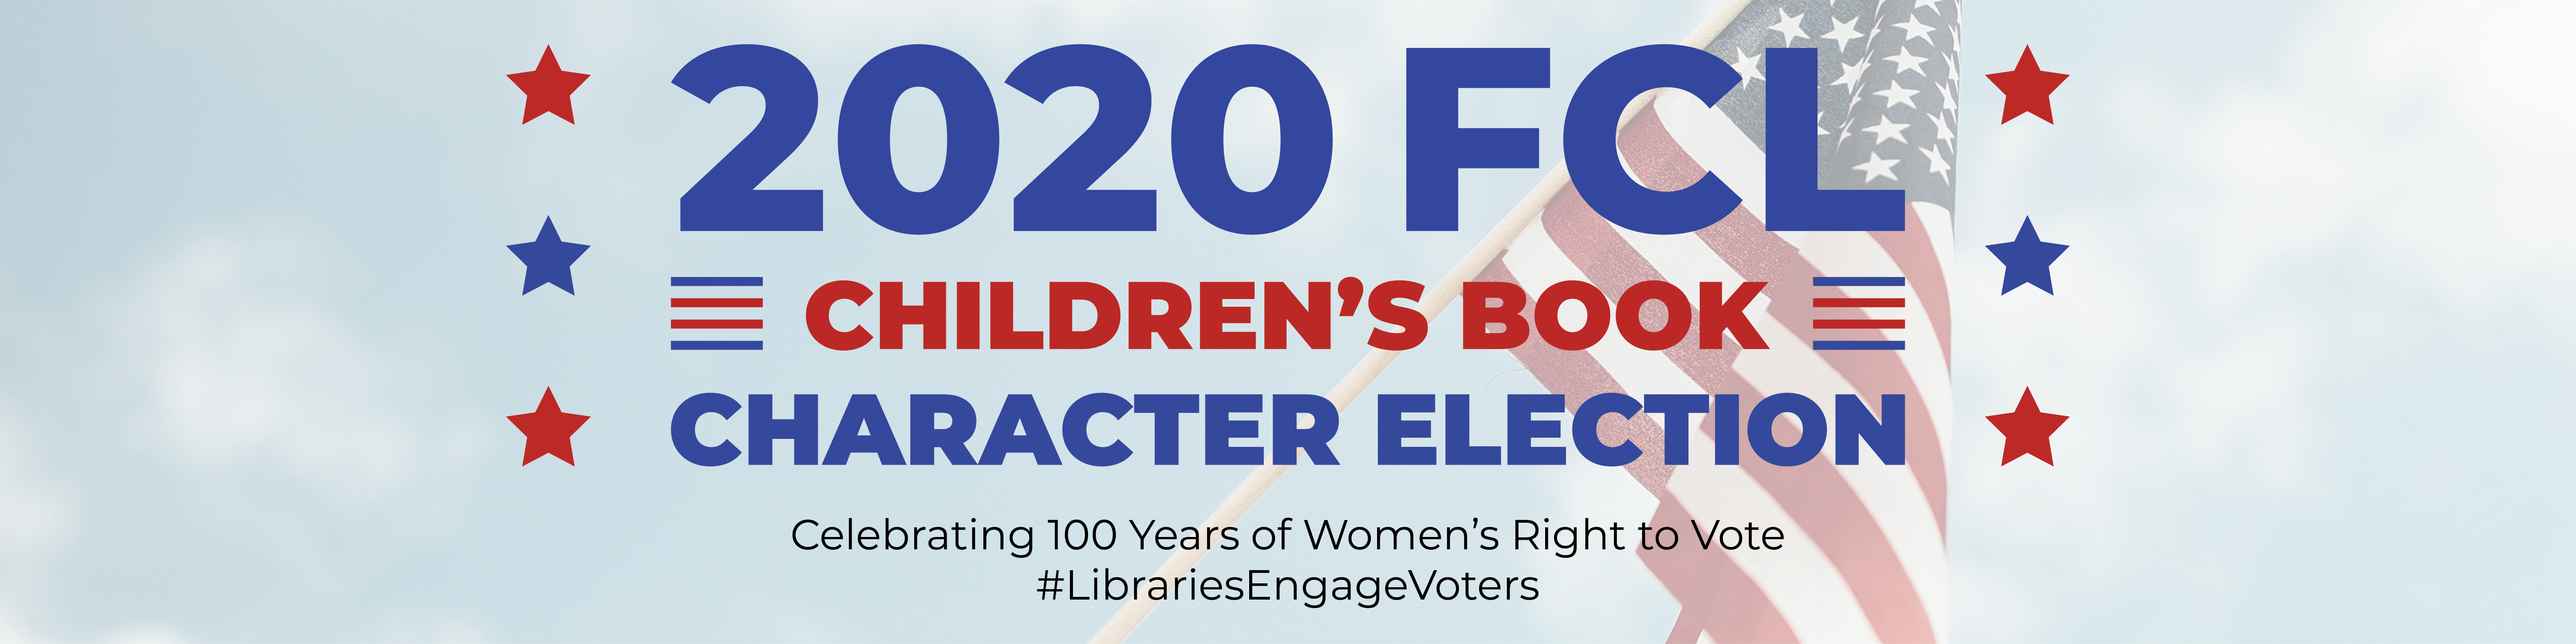 Children's Book Character Election